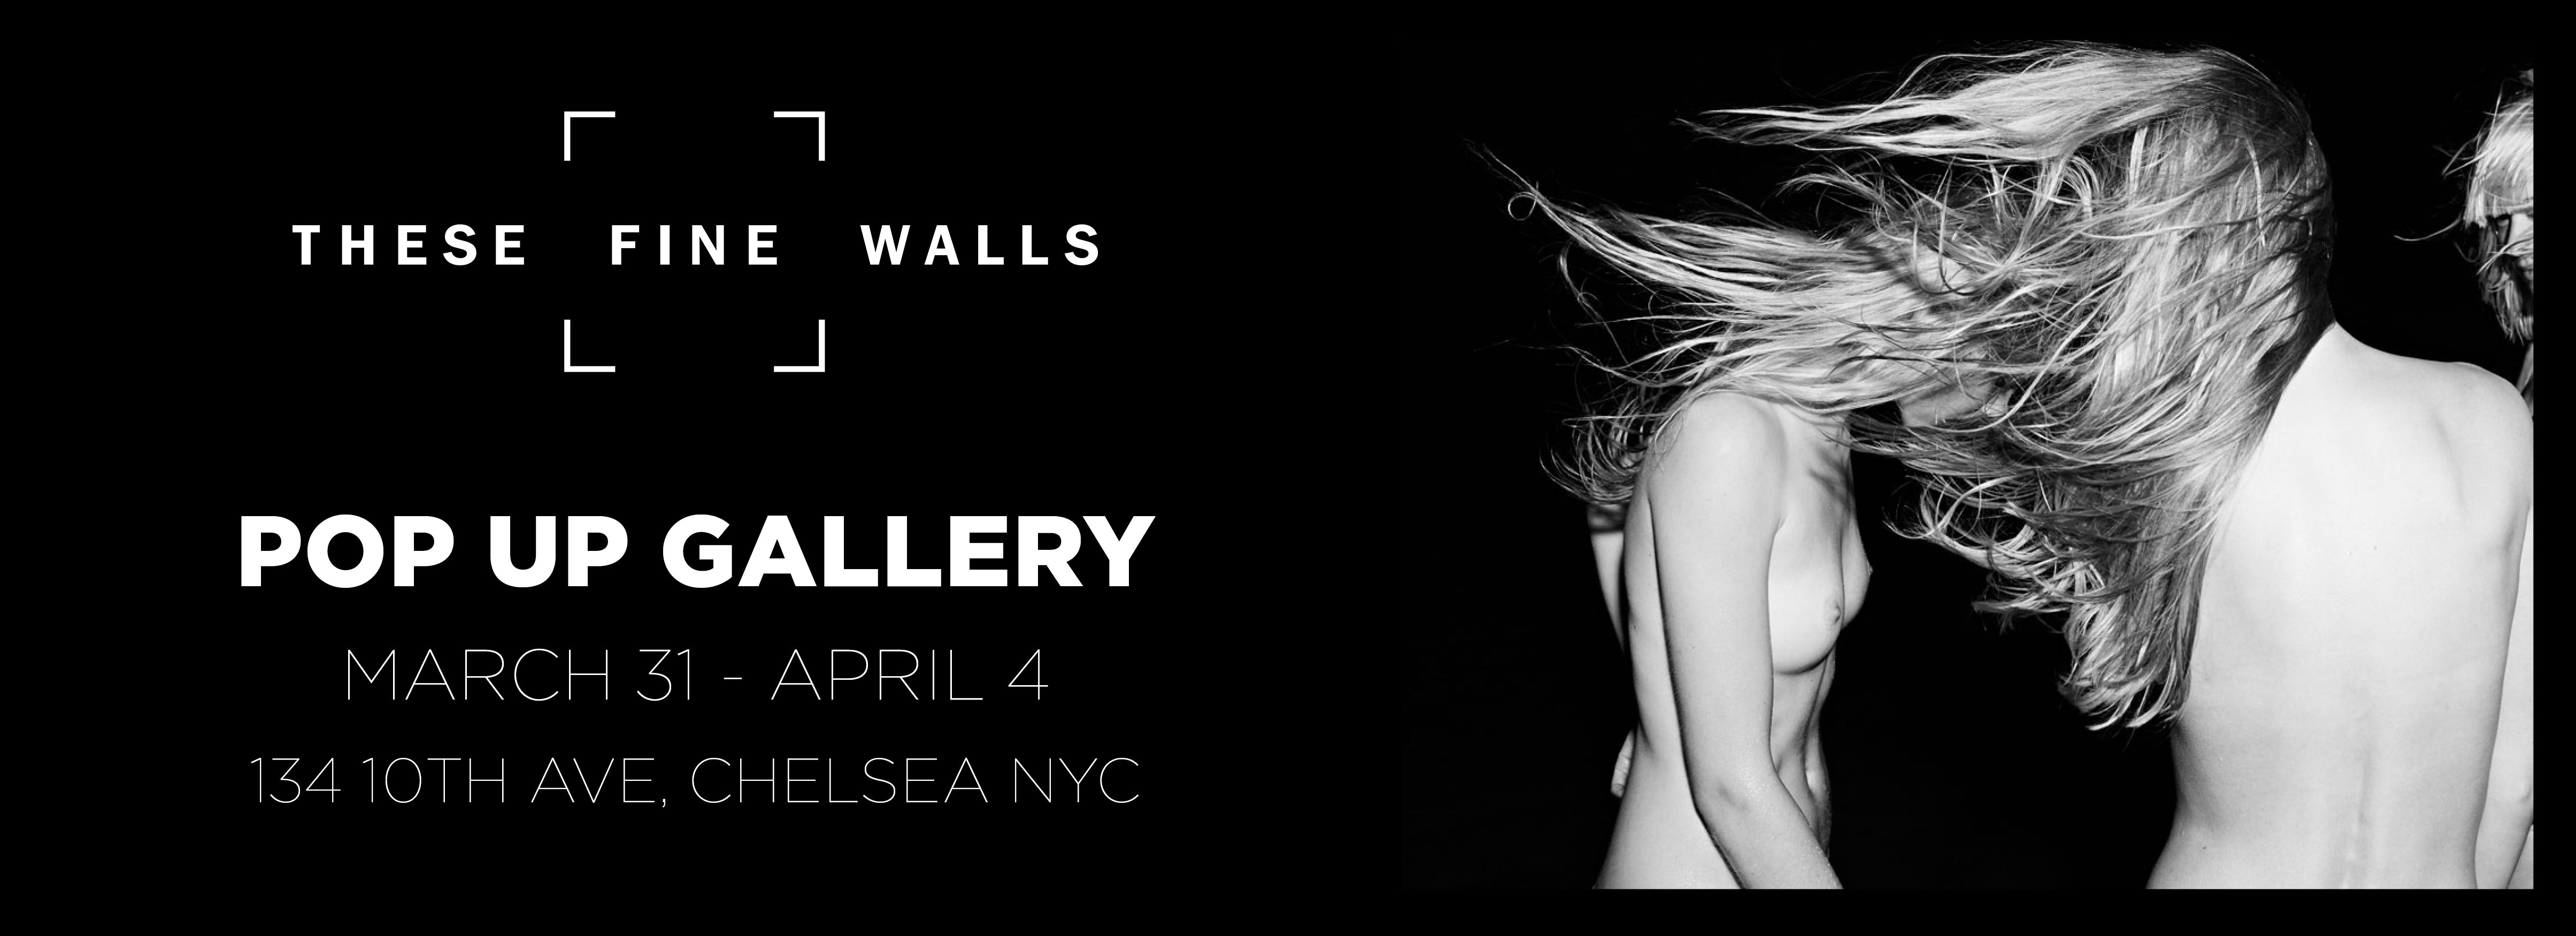 TheseFineWalls Pop-Up Contemporary Photography Exhibition